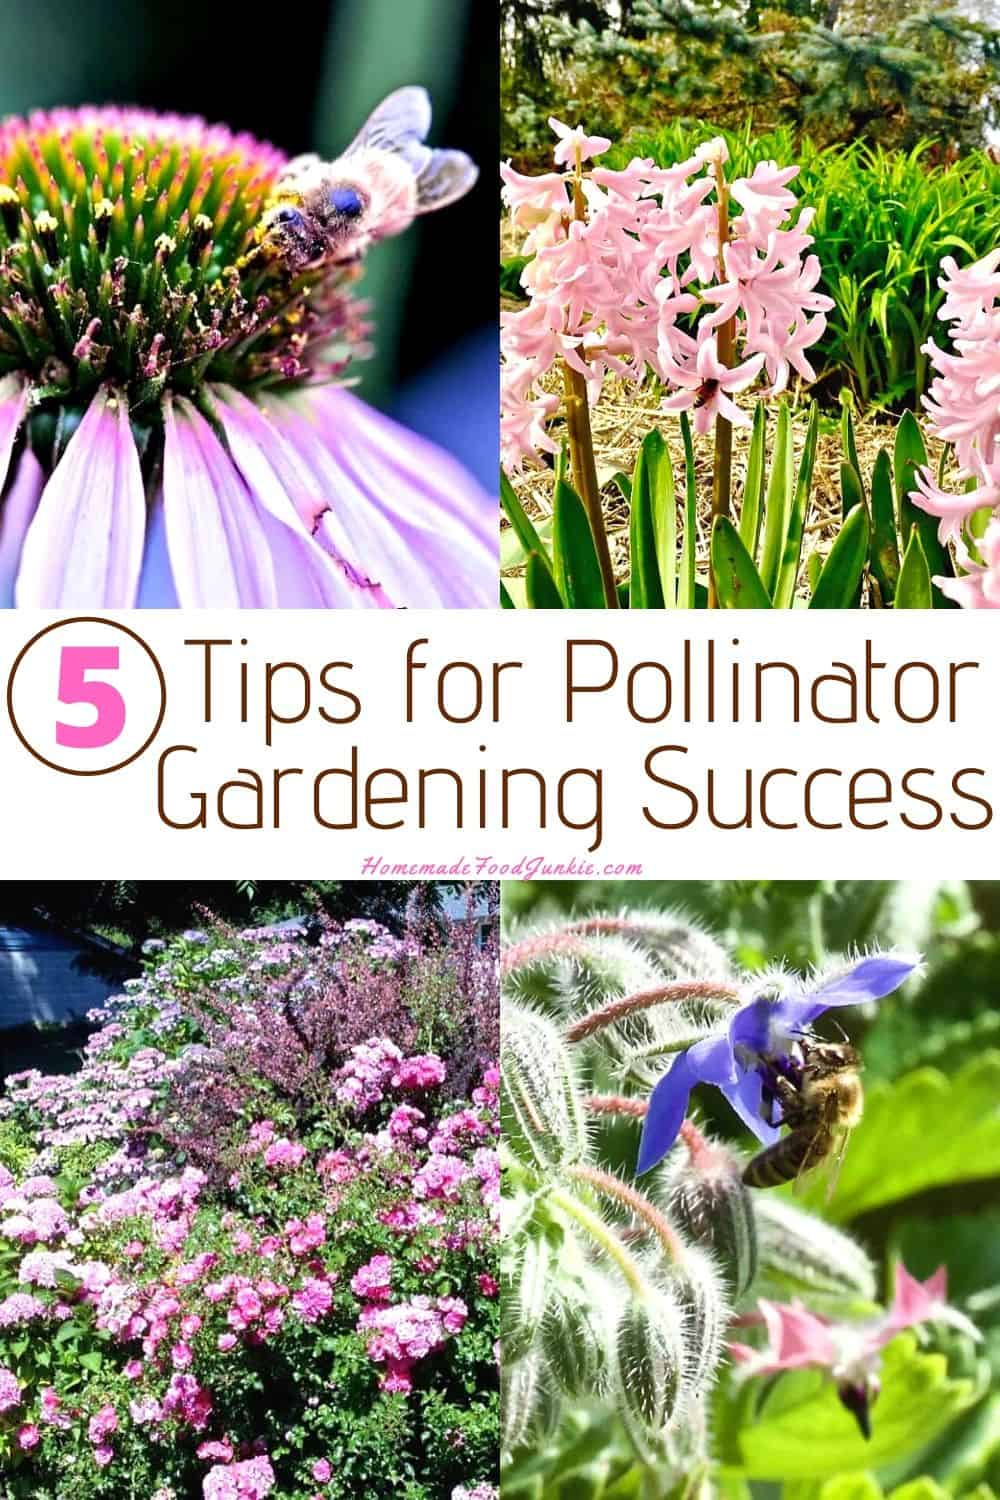 Tips for Pollinator Gardening Success-pin image